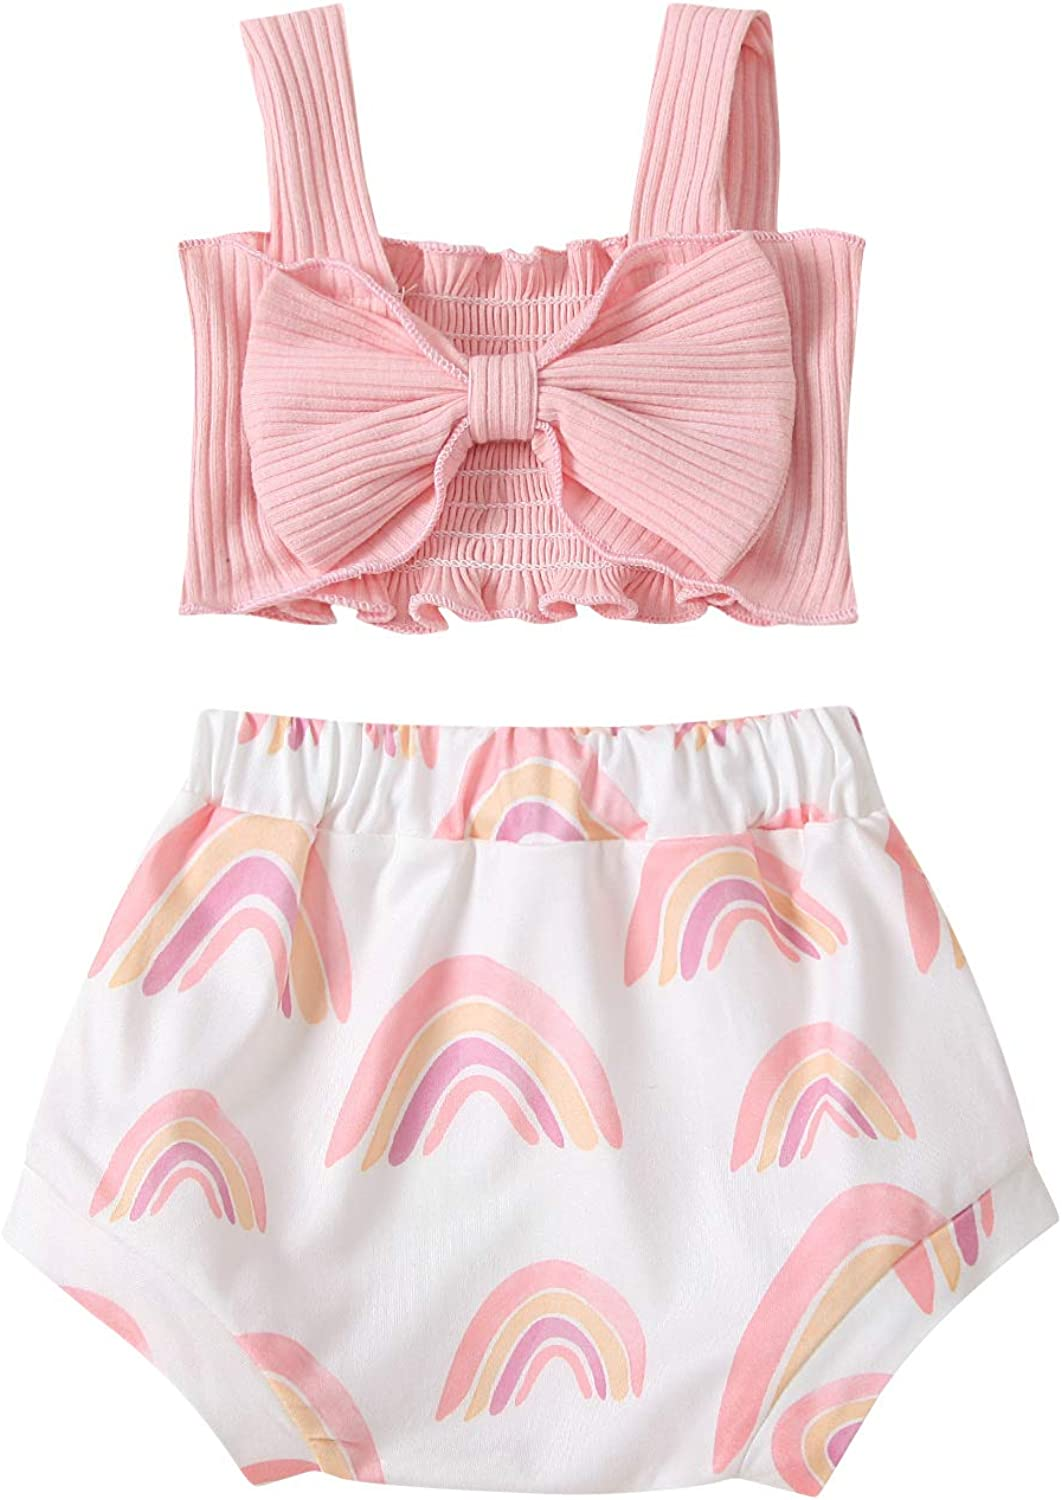 Toddler Girl Clothes Ribbed Bow Halter Crop Top Cute Tank Tops Rainbow Bloomers Shorts Baby Girl Summer Outfit